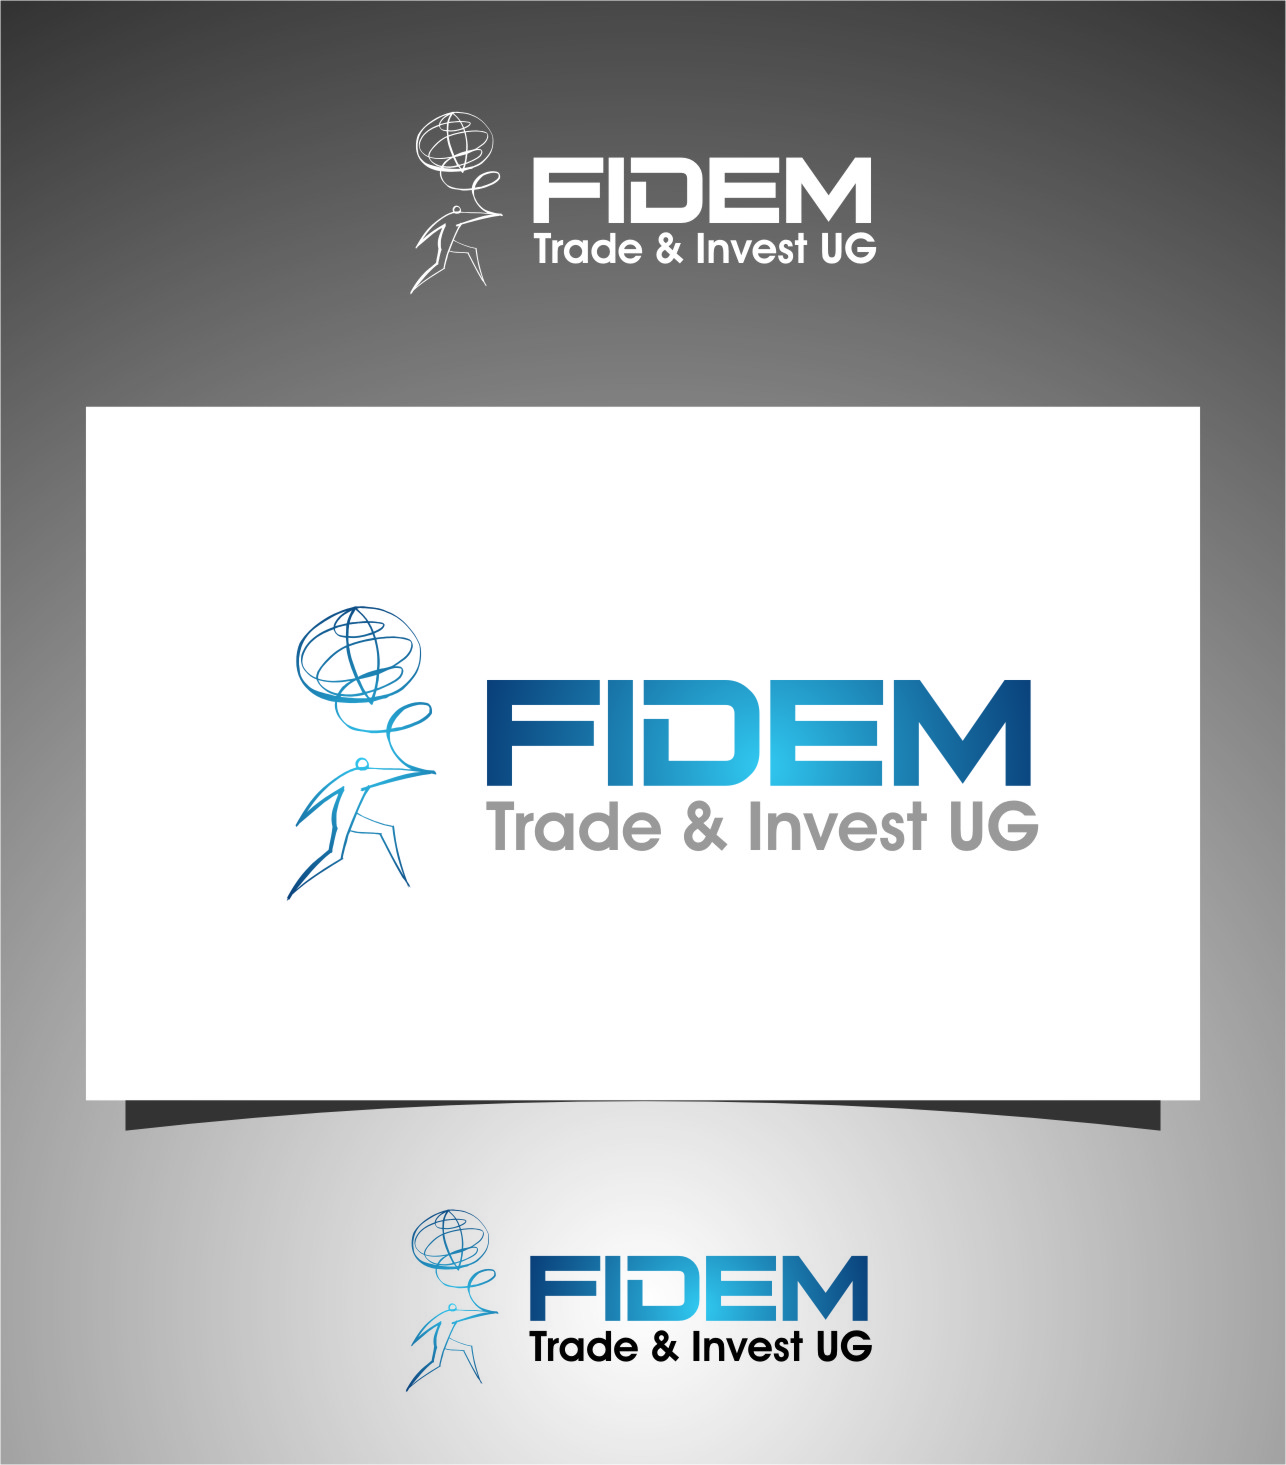 Logo Design by Ngepet_art - Entry No. 96 in the Logo Design Contest Professional Logo Design for FIDEM Trade & Invest UG.